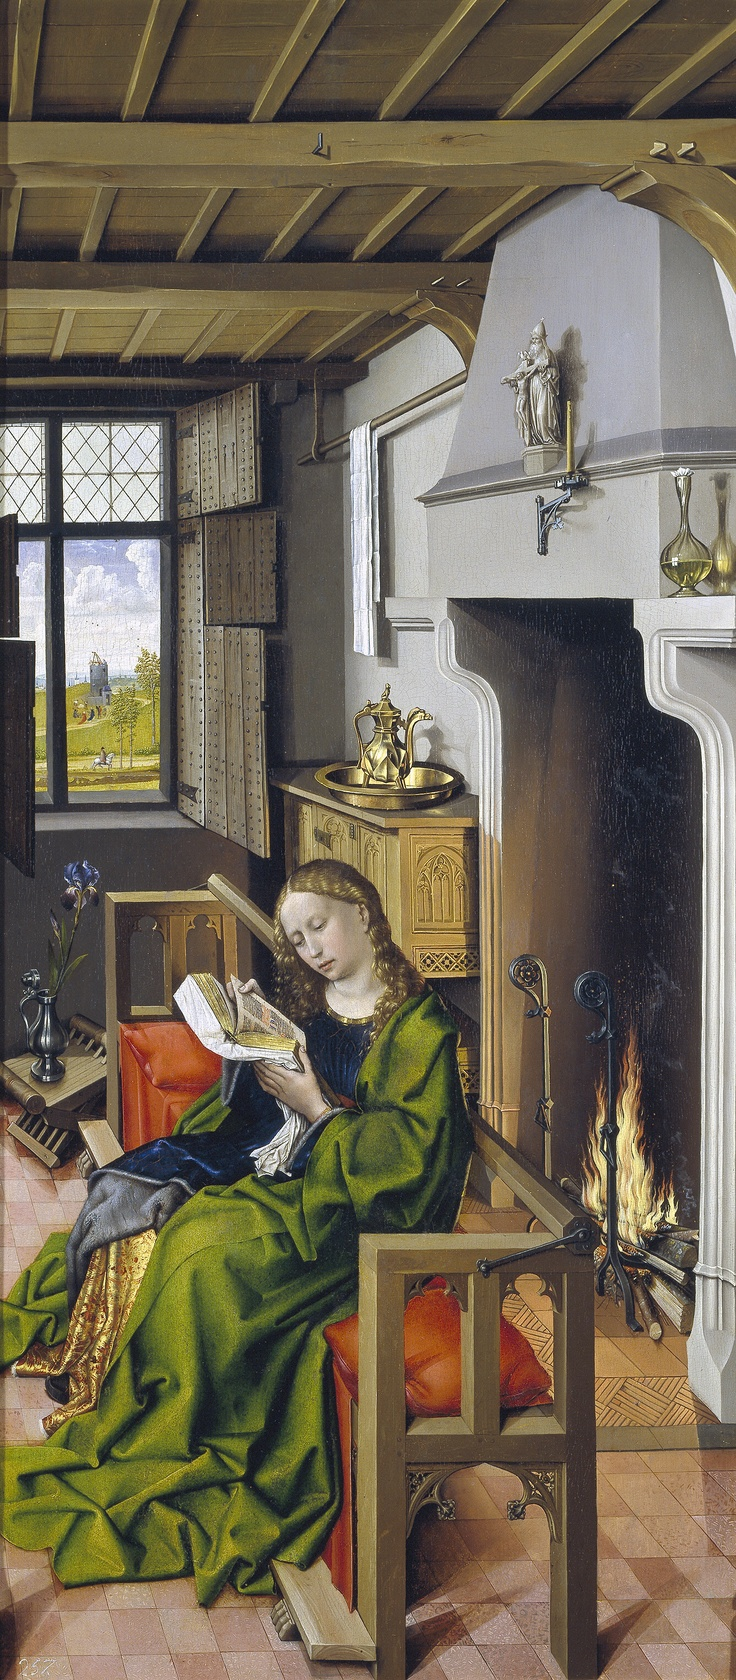 Master of Flemalle (Robert Campin?), The Werl Altarpiece (left panel), Saint Barbara, completed 1438 in Cologne. Now in the Prado, Madrid. 547×1,285 pixels